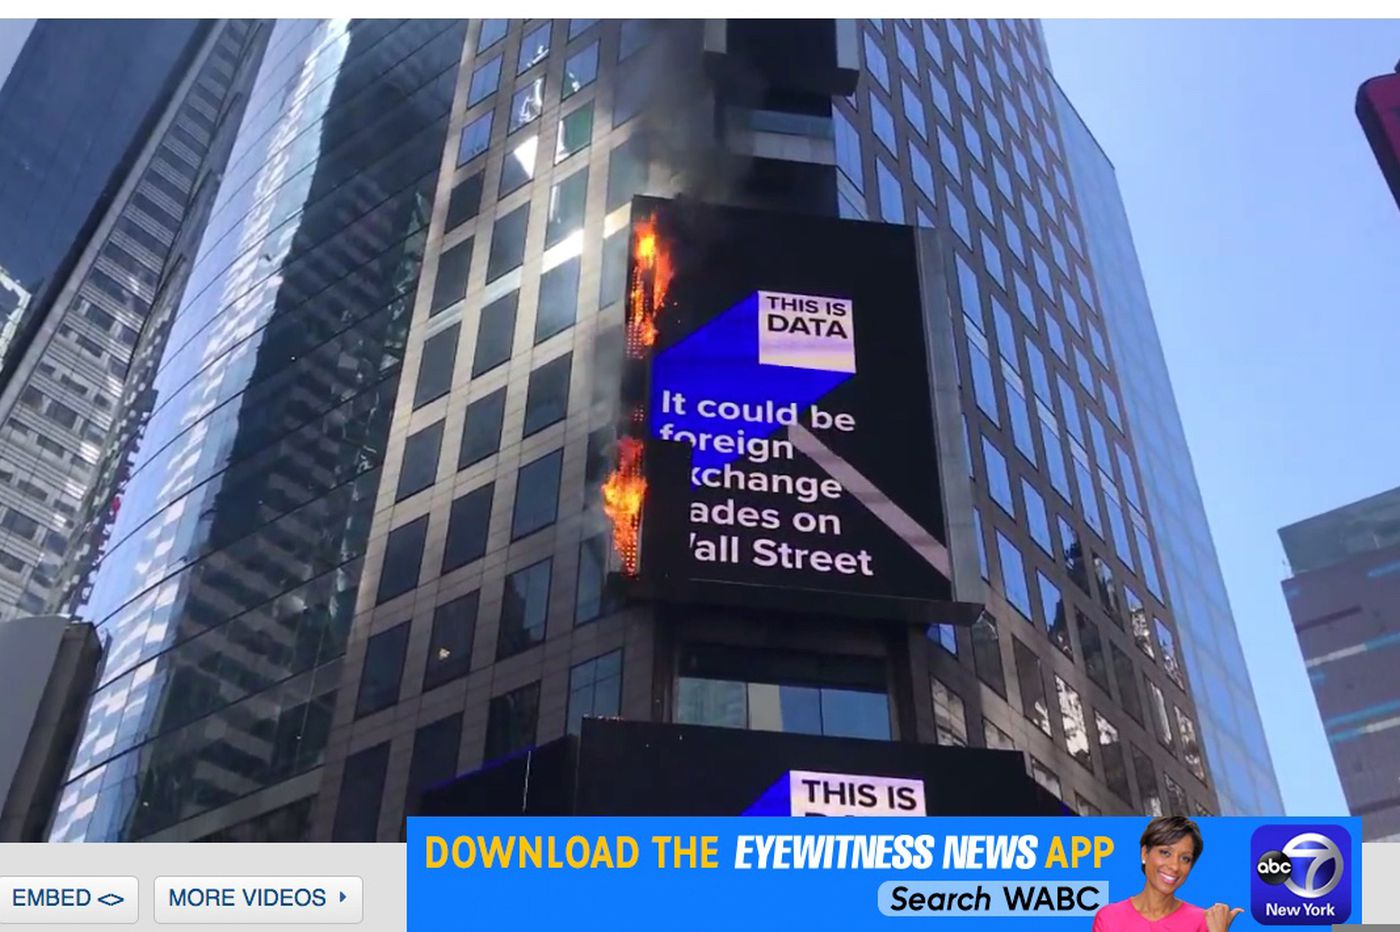 Firefighters respond to Time Square billboard fire